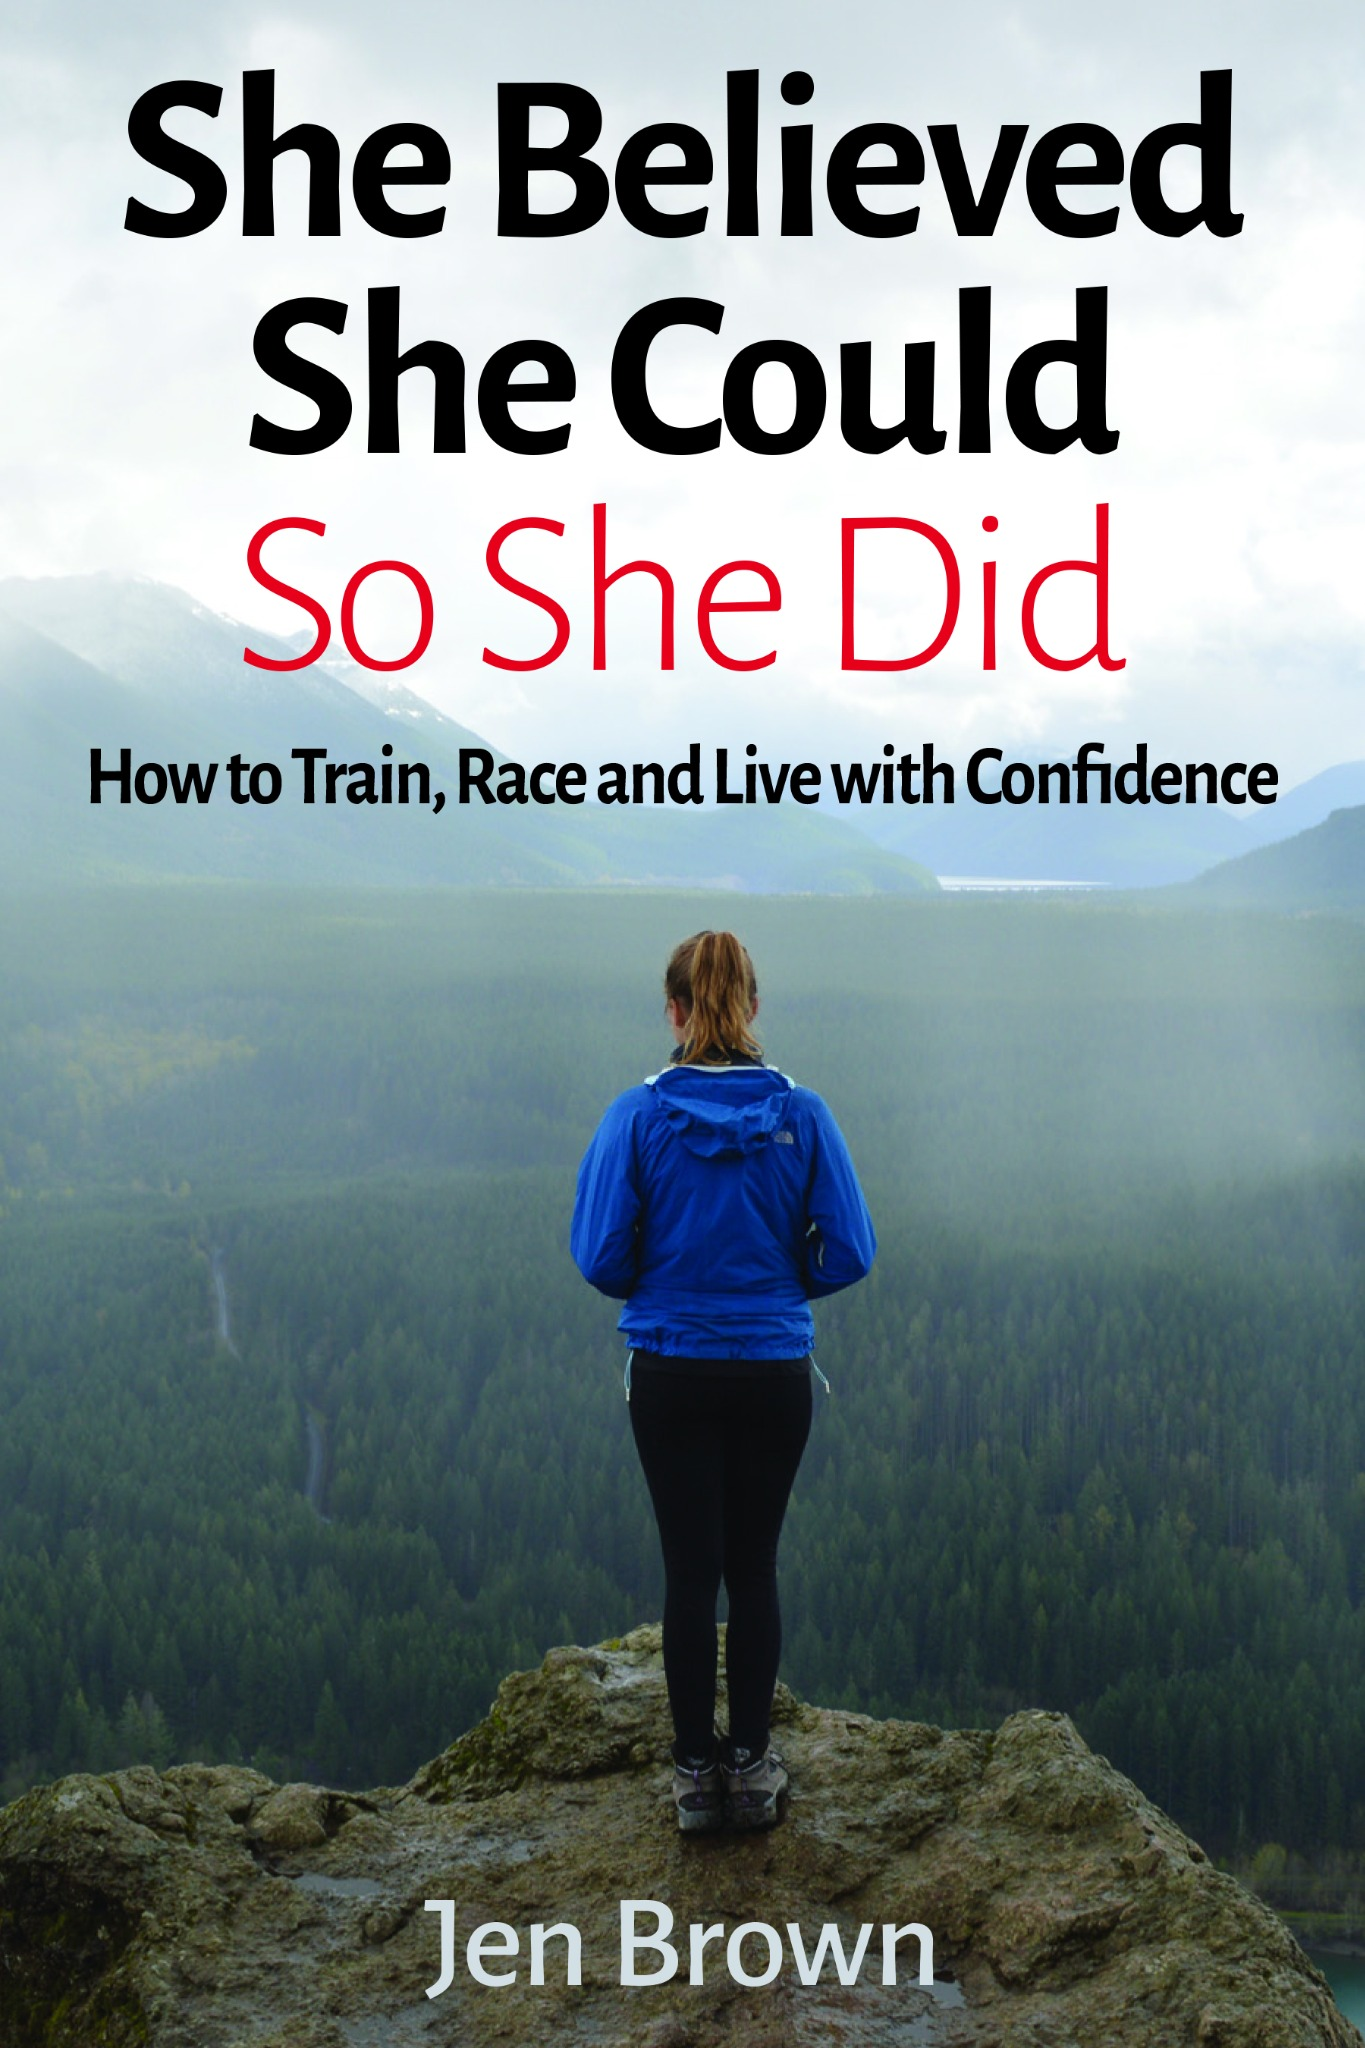 She Believed She Could So She Did: How to Train, Race and Live with Confidence: Paperback